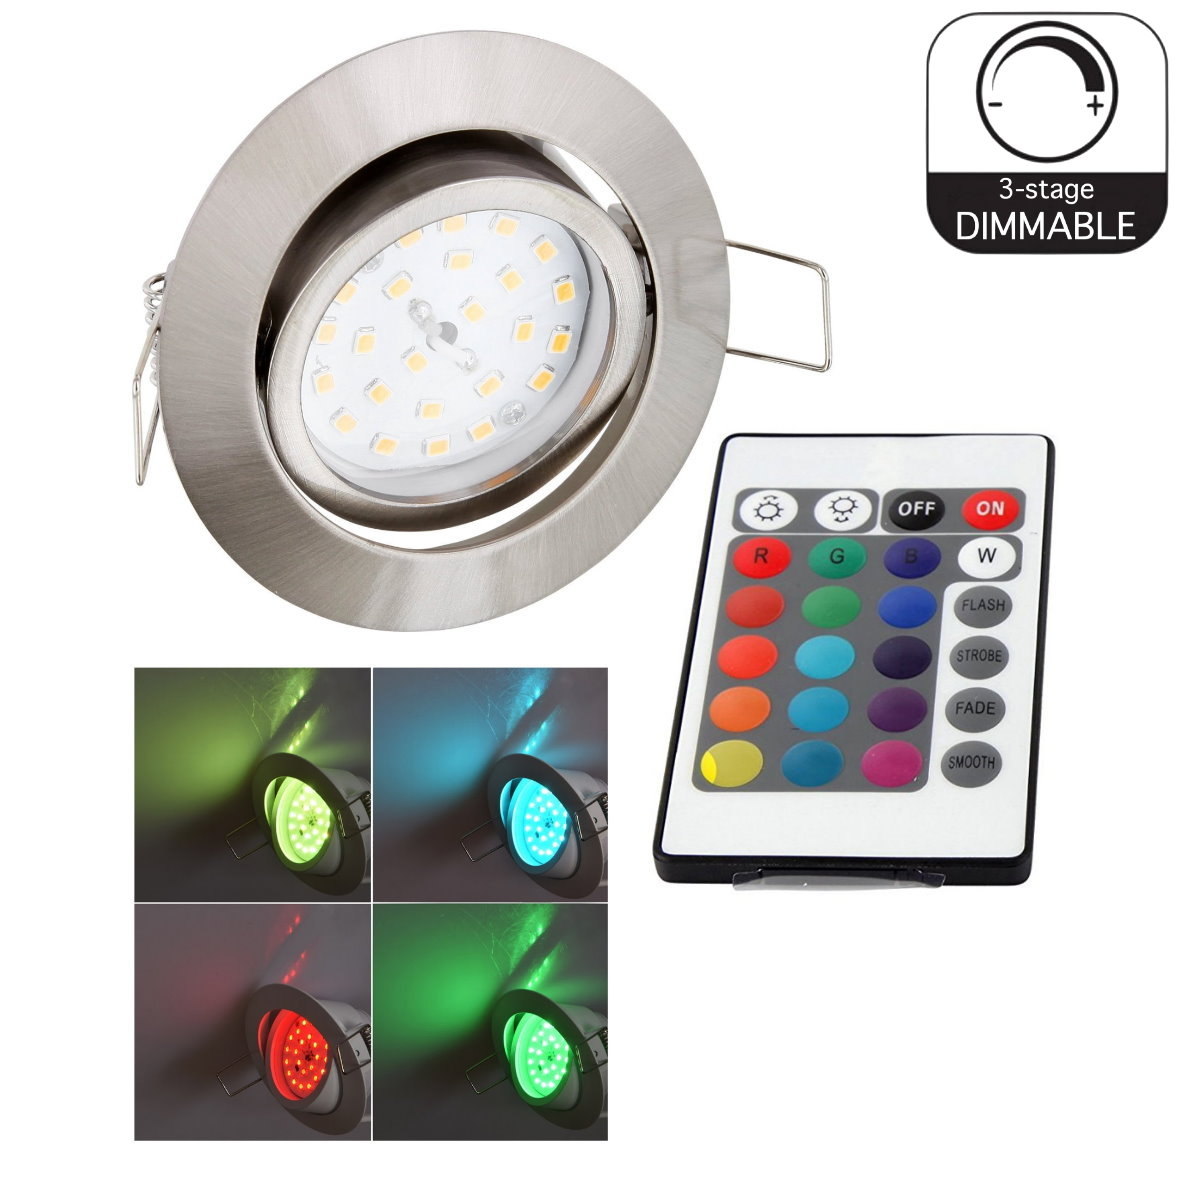 rgb led spot einbauleuchte einbaustrahler fernbedienung 230v farbwechsel dimmbar ebay. Black Bedroom Furniture Sets. Home Design Ideas